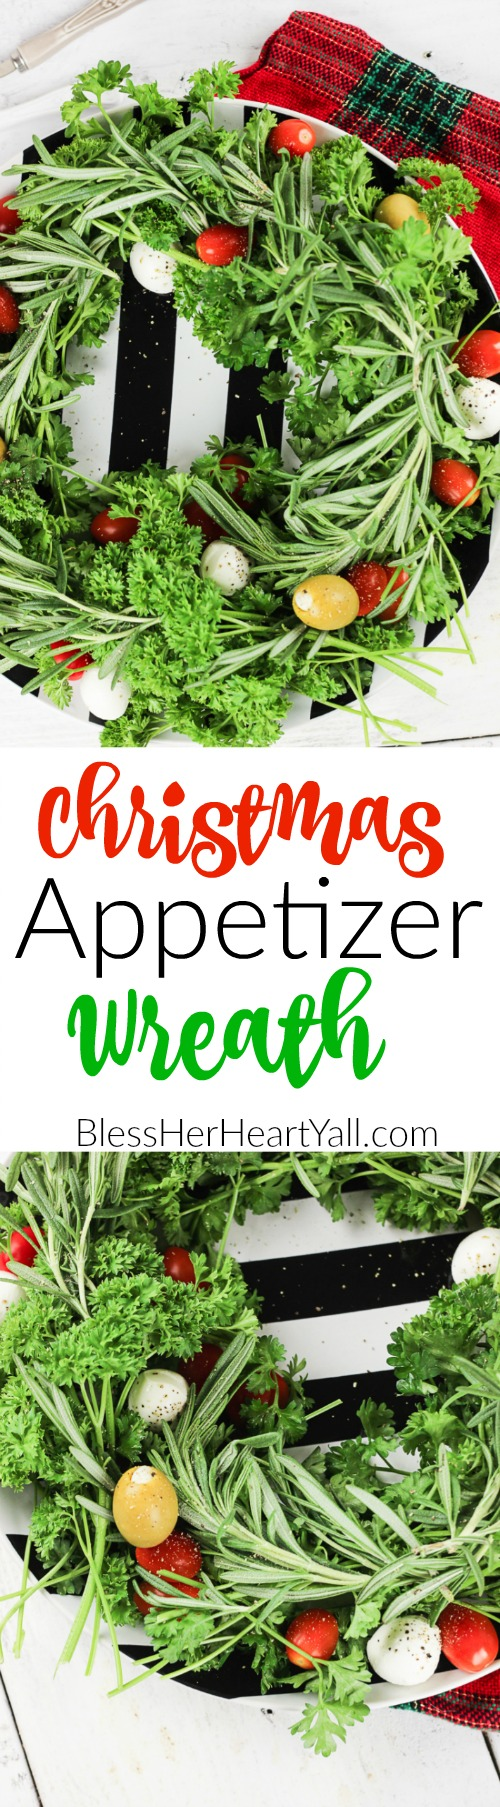 This holiday vegetable wreath is a festive holiday appetizer platter that plates your favorite herbs underneath tasty mozzarella cheese, sweet tomatoes, and your favorite olives. Sprinkle cracked pepper and a delicious balsamic reduction drizzle to finish!